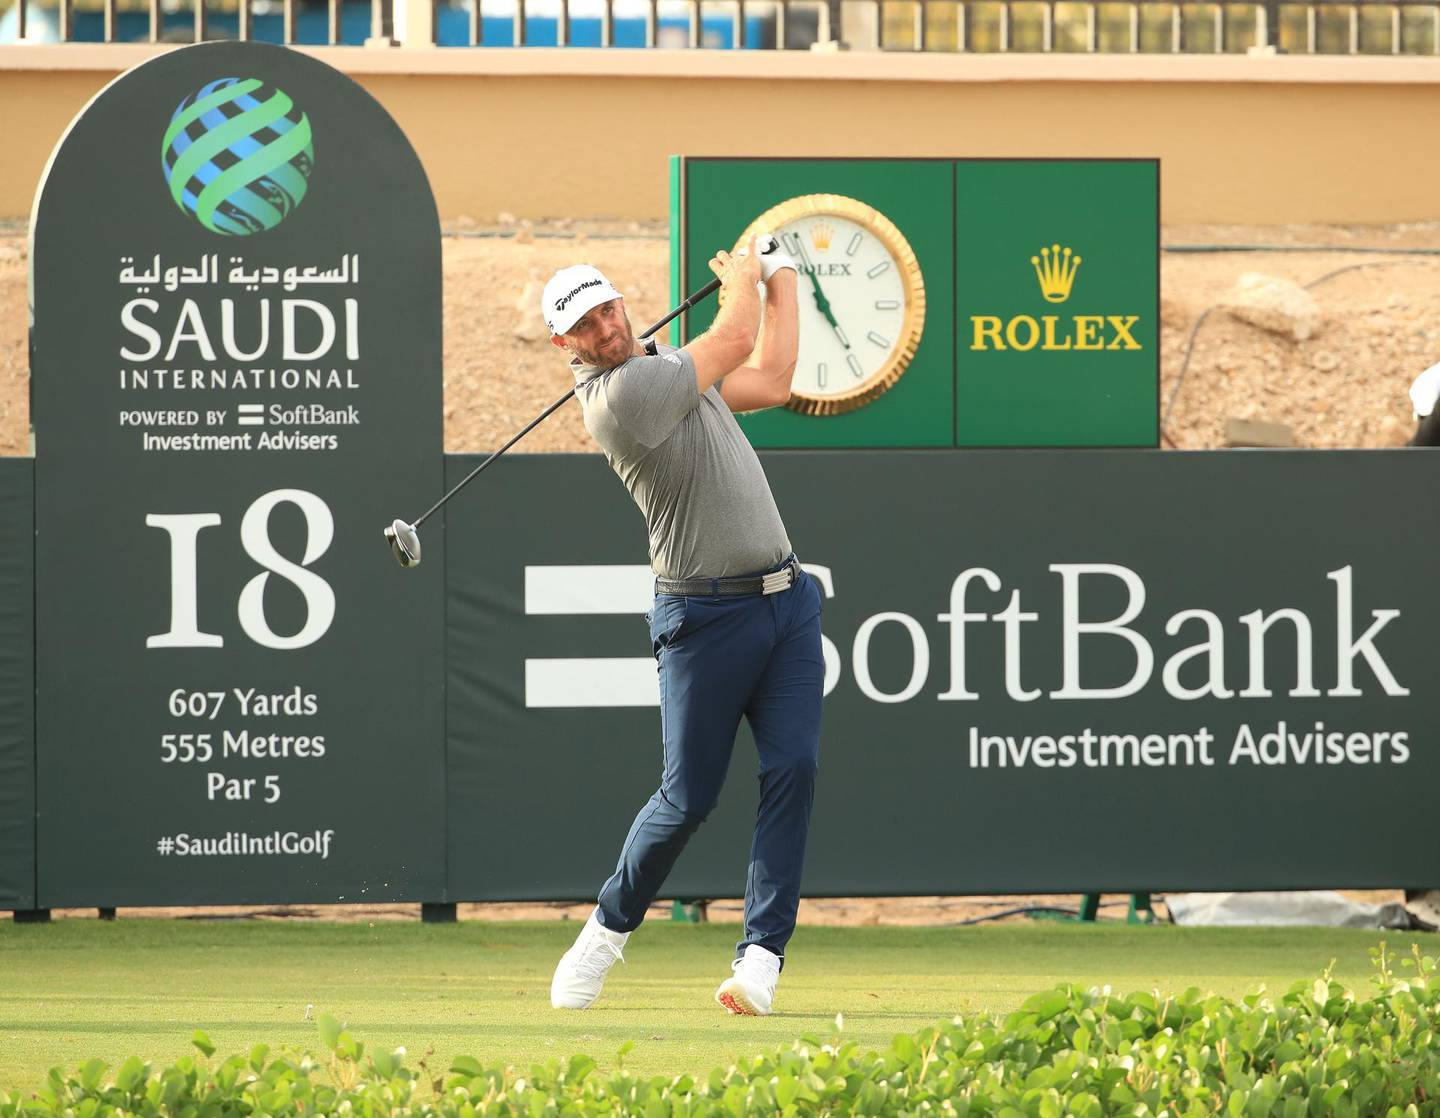 KING ABDULLAH ECONOMIC CITY, SAUDI ARABIA - JANUARY 31: Dustin Johnson of The United States of America tees off on the 18th hole during Day 2 of the Saudi International at Royal Greens Golf and Country Club on January 31, 2020 in King Abdullah Economic City, Saudi Arabia. (Photo by Andrew Redington/WME IMG/WME IMG via Getty Images)